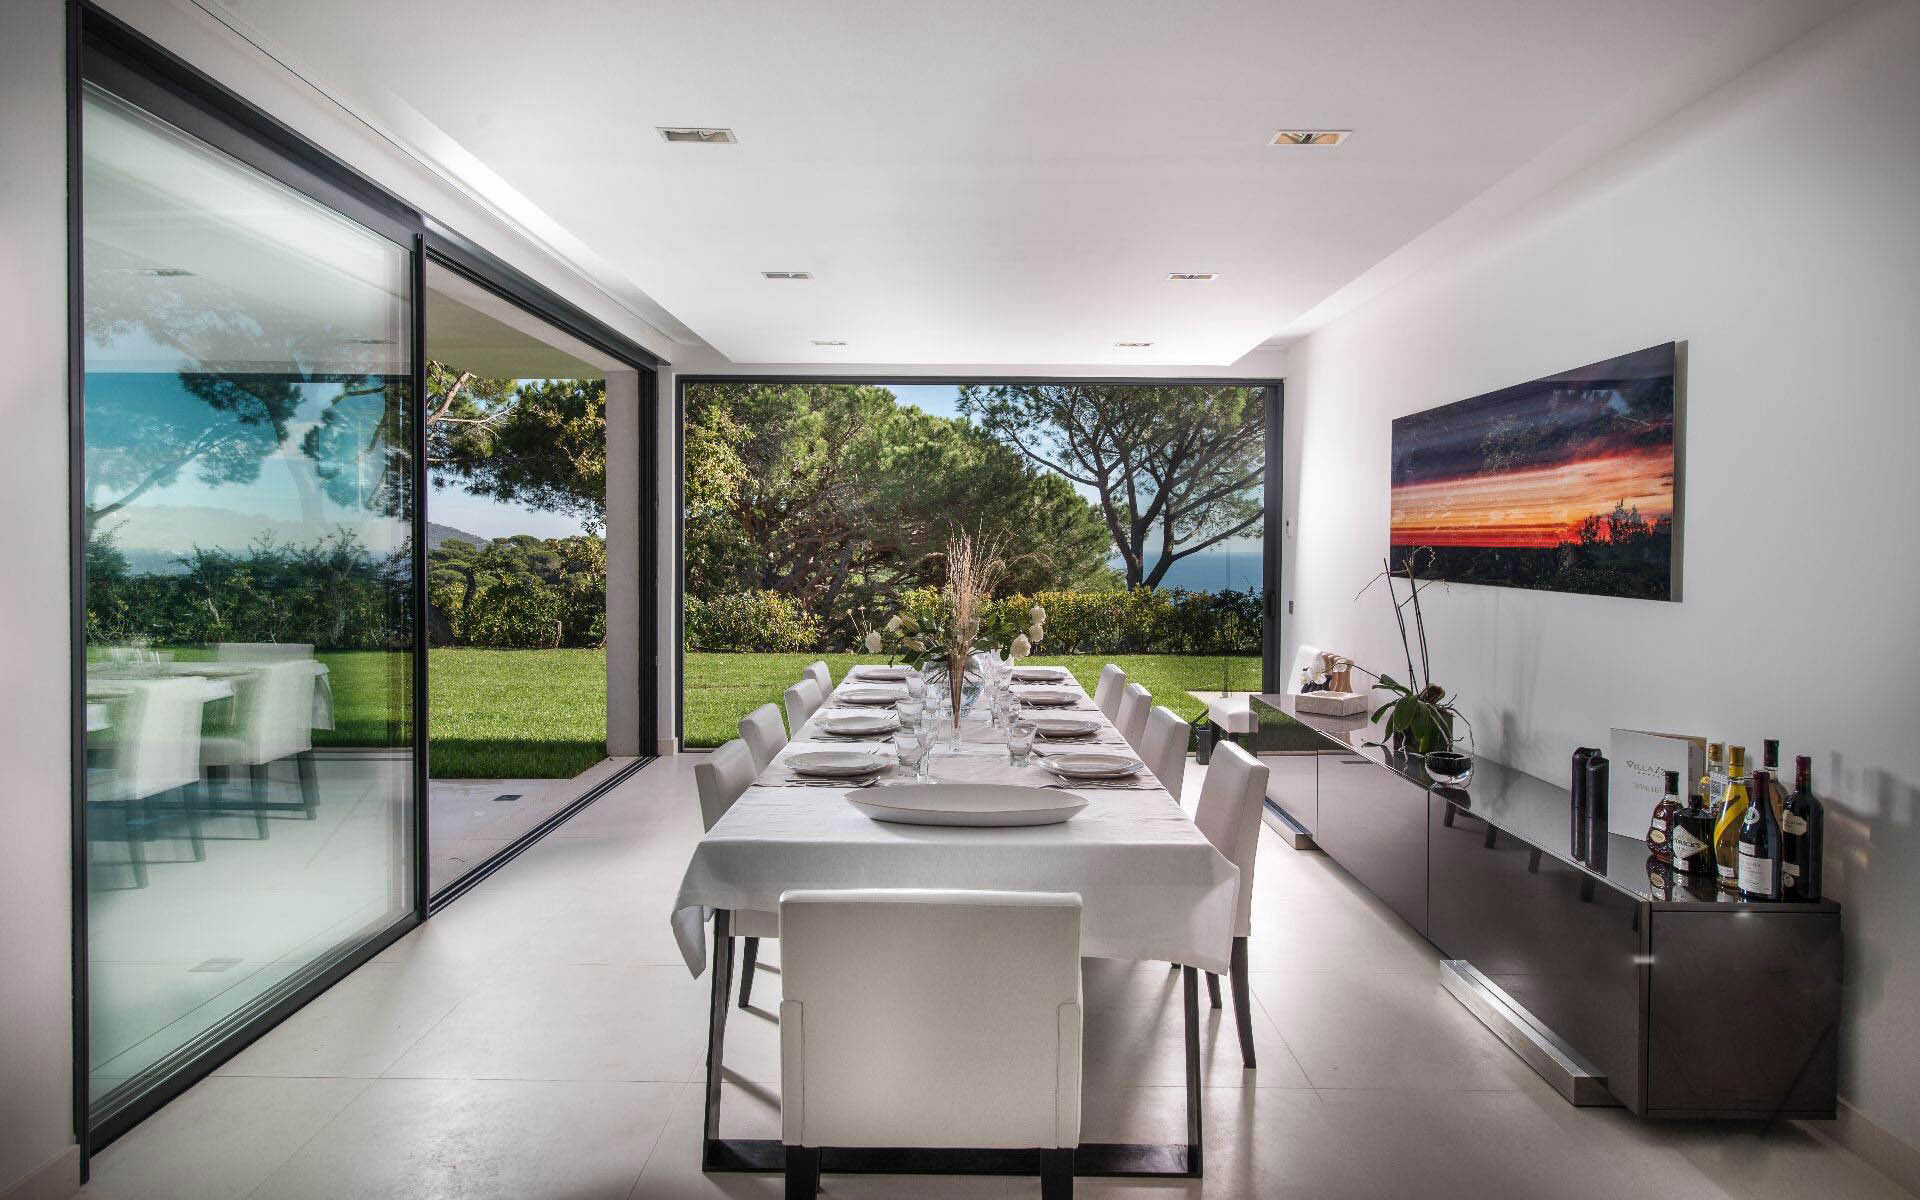 Dining Room, Luxury Holiday Villa in Saint-Tropez, France